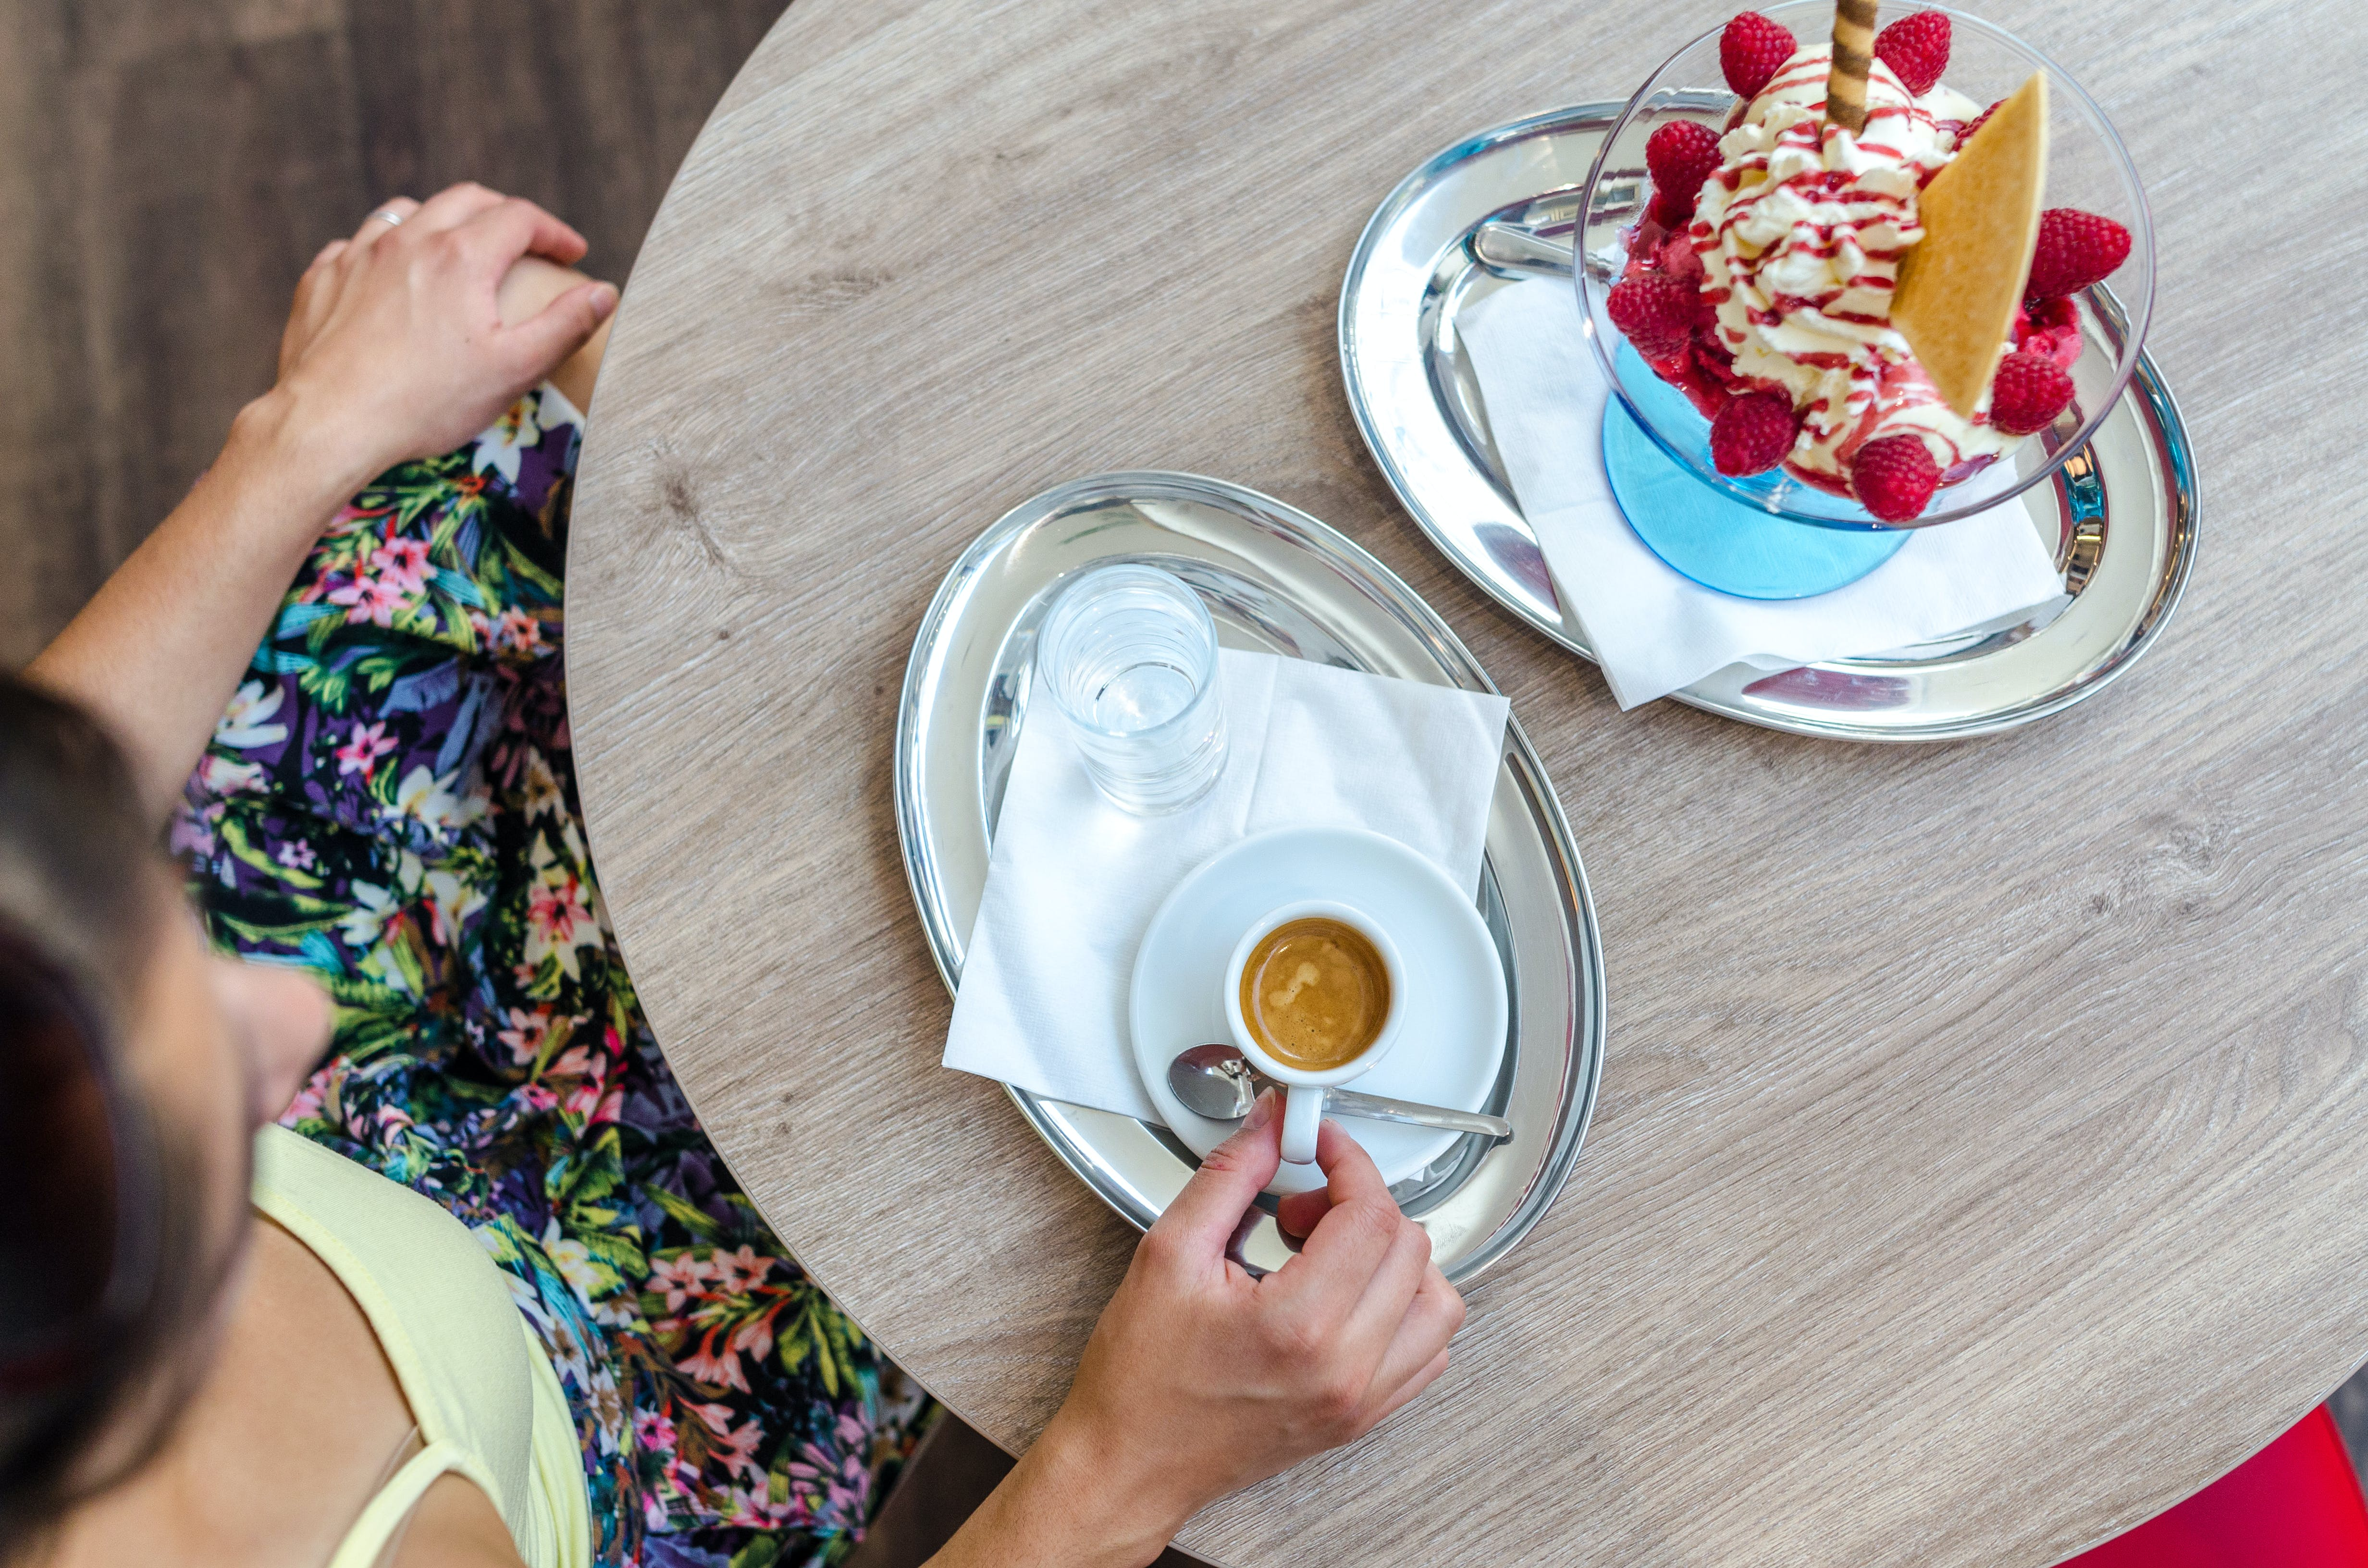 Person Sitting in Front of Wooden Table While Holding Teacup on Tray